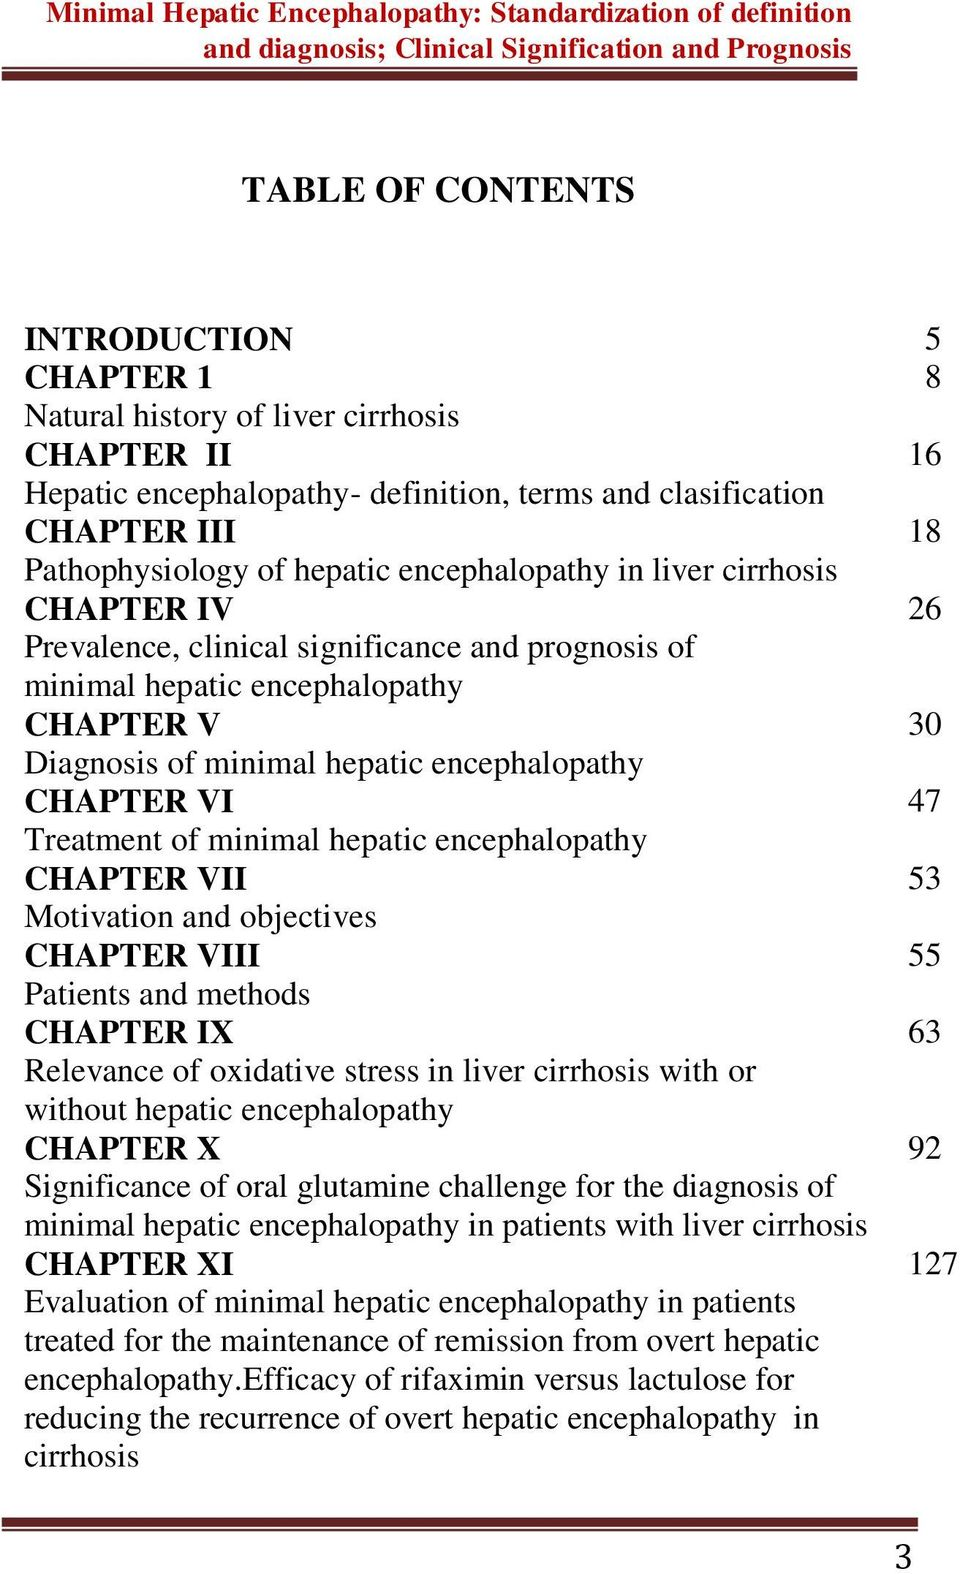 CHAPTER V 30 Diagnosis of minimal hepatic encephalopathy CHAPTER VI 47 Treatment of minimal hepatic encephalopathy CHAPTER VII 53 Motivation and objectives CHAPTER VIII 55 Patients and methods